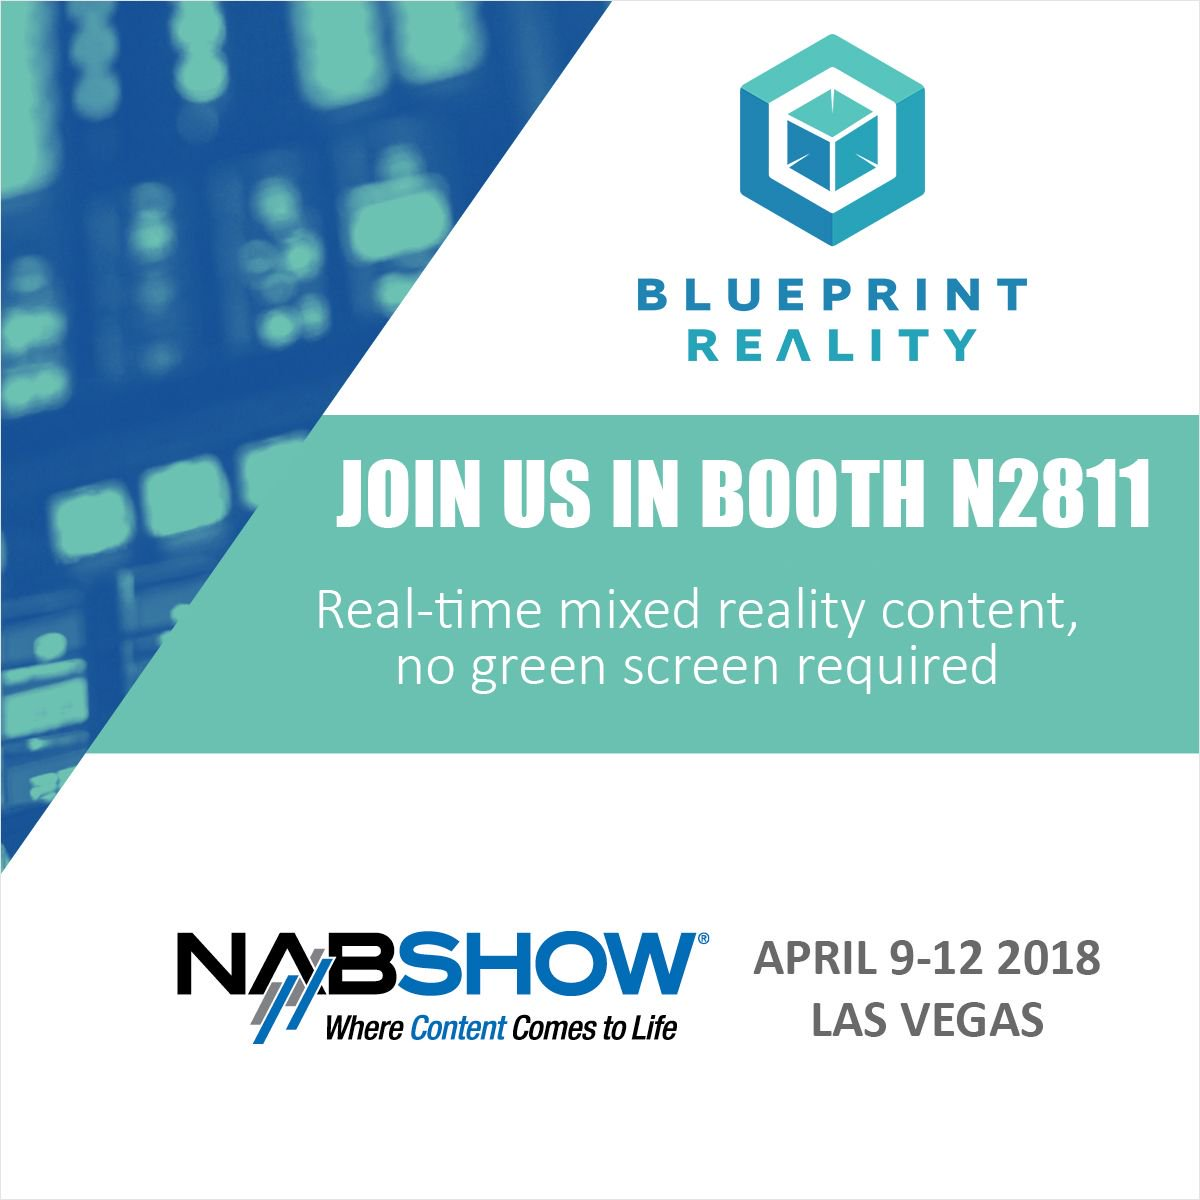 """We'll be at #NABShow next week showing #MixCast - the best way to show real people in #VR. Stop by booth N2811 to check out our """"no green screen"""" background removal system. #MR #MixedReality"""